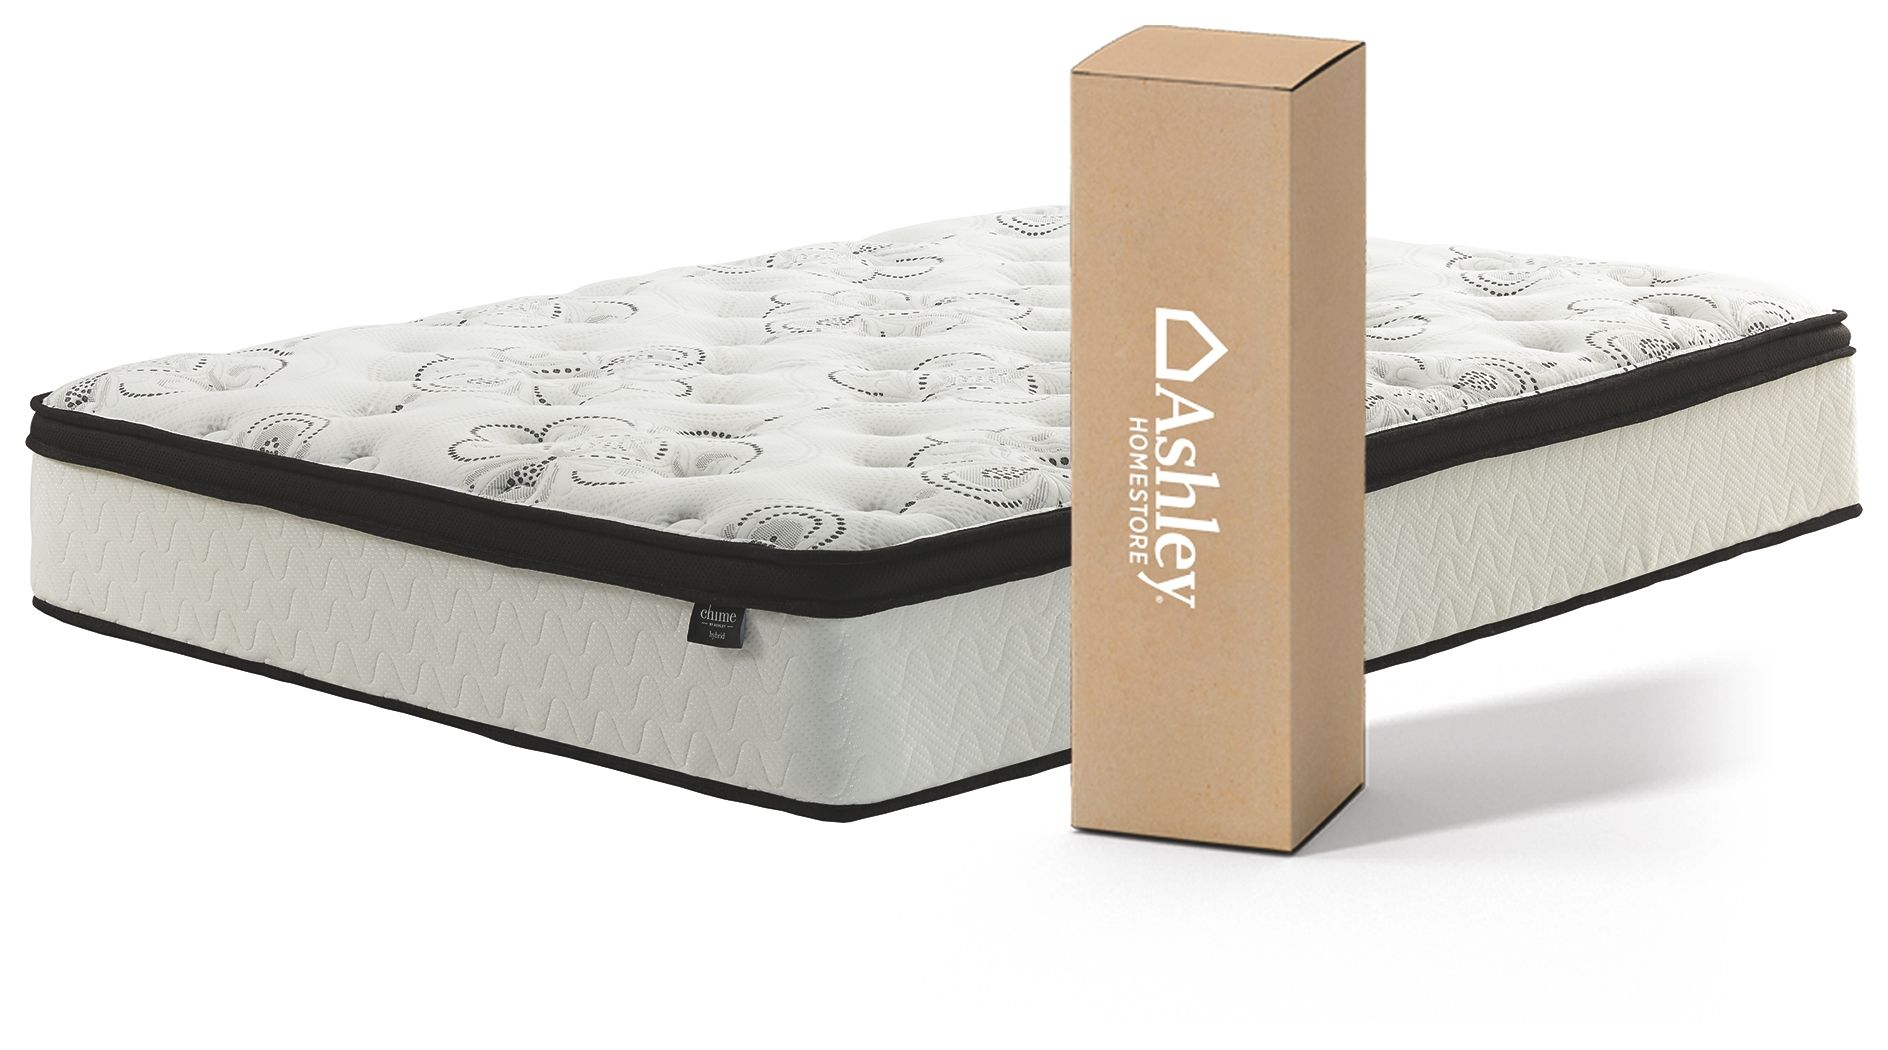 12 Inch Hybrid California King Mattress In A Box In A Box Products In 2019 Mattress Queen Mattress Best Mattress